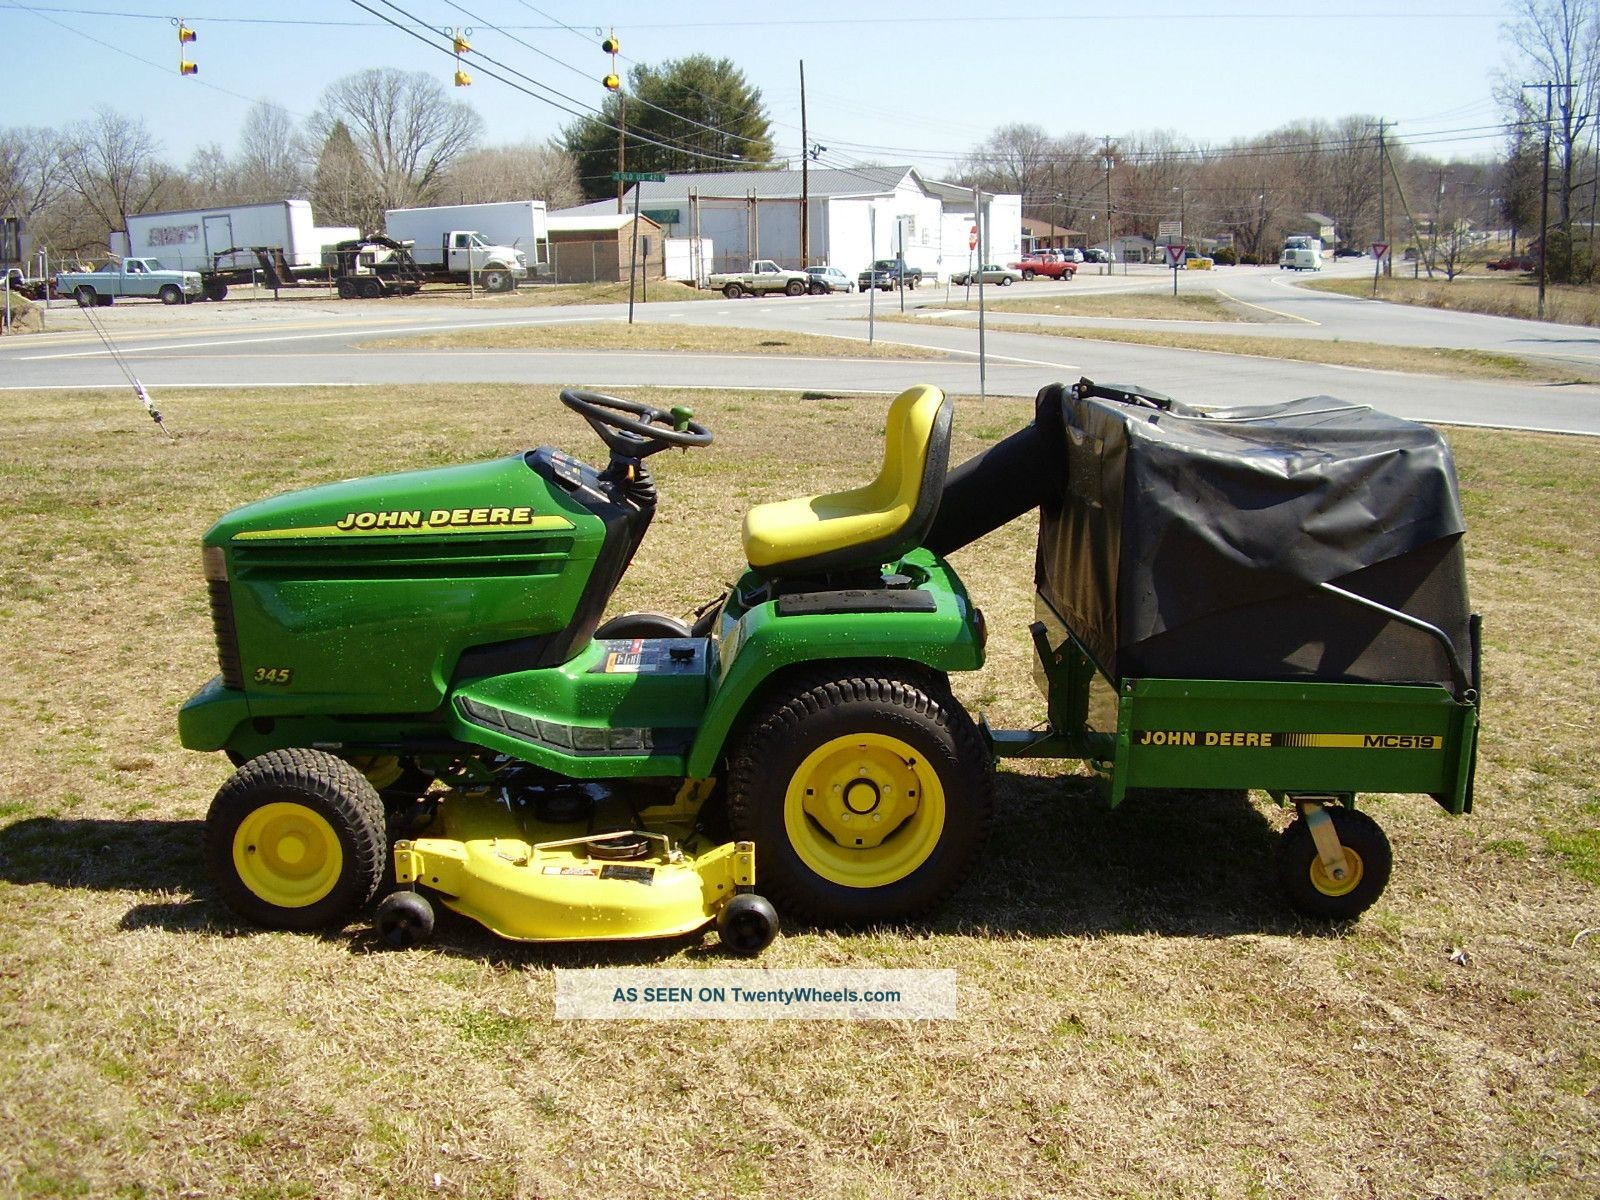 John Deere Modle 345 Electrical John Deere 345 Water Cooled Riding Mower Of John Deere Modle 345 Electrical